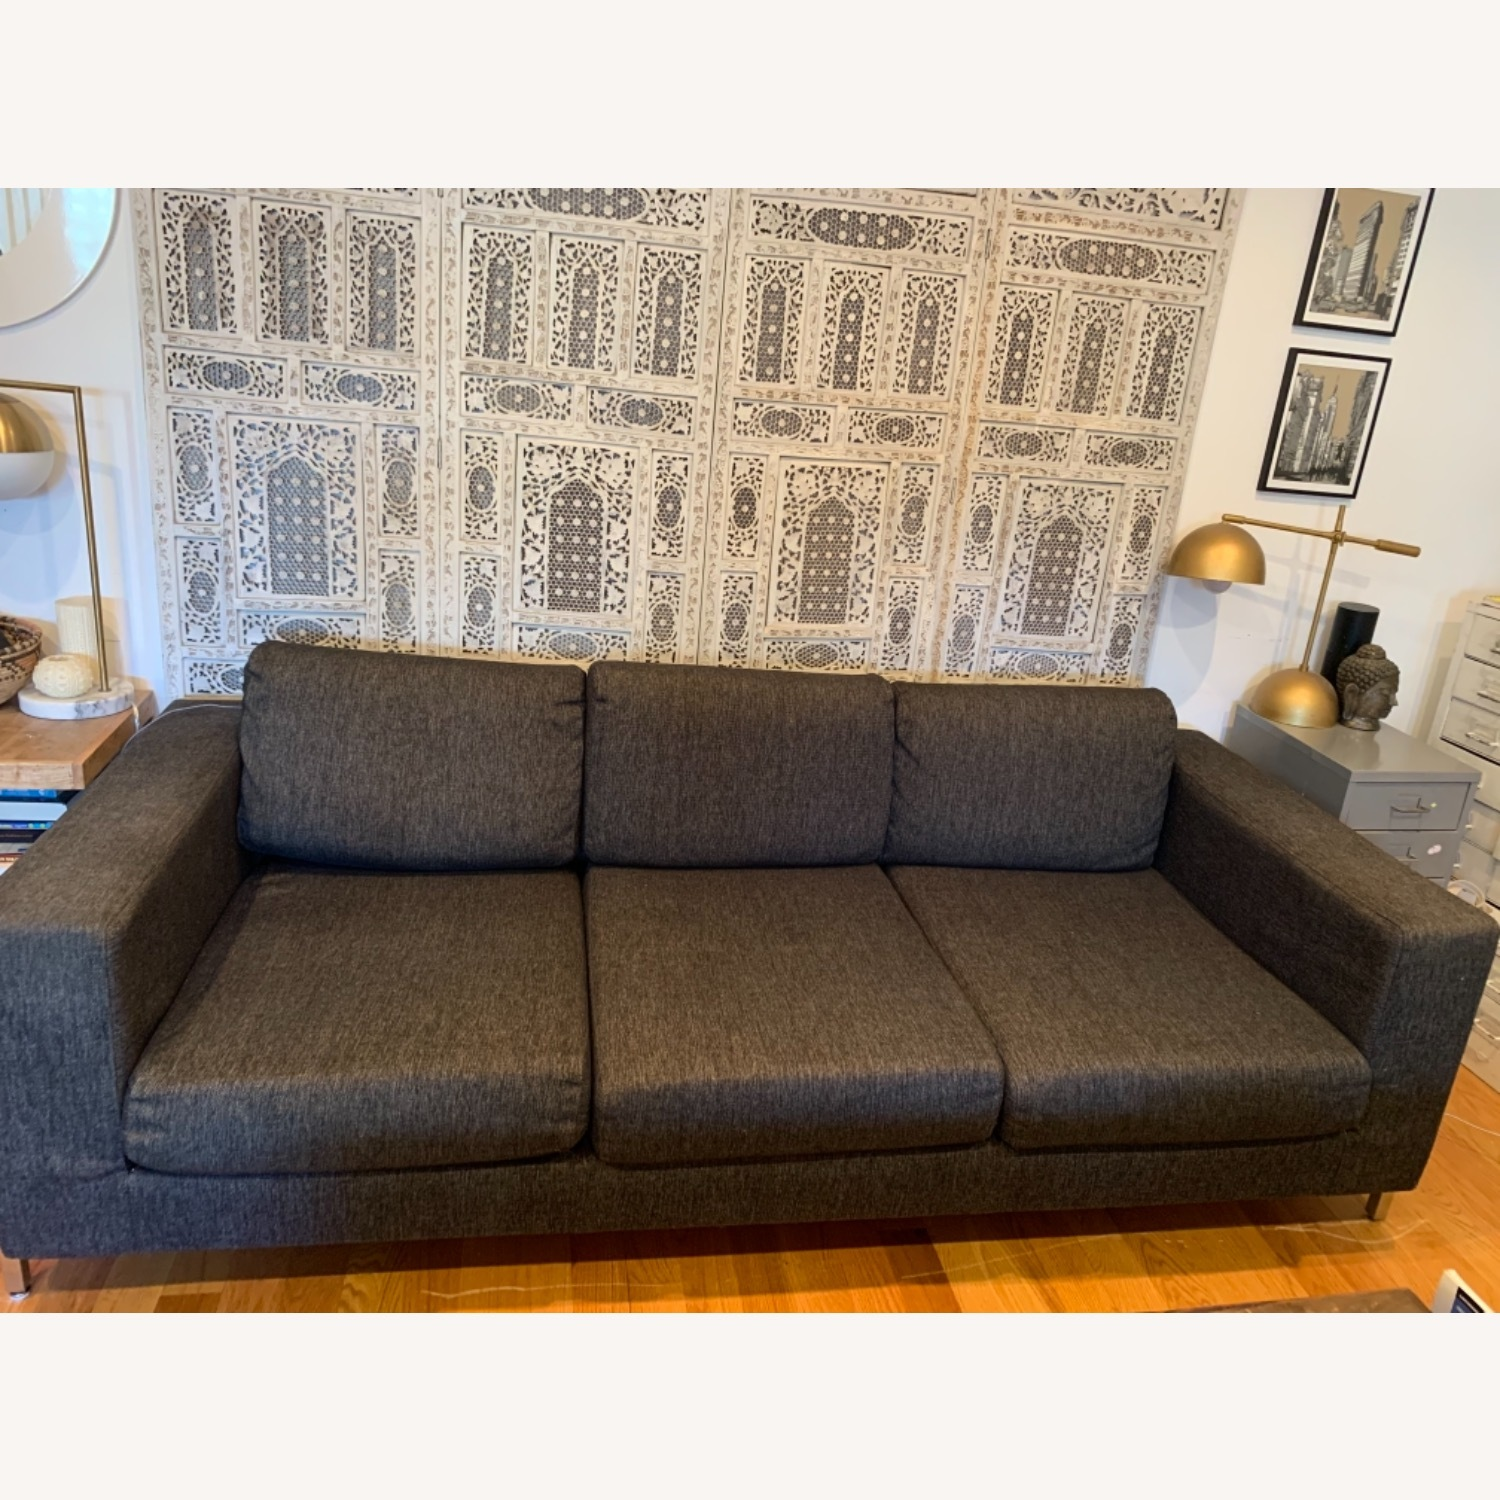 Gus Modern Gray Couch - image-10